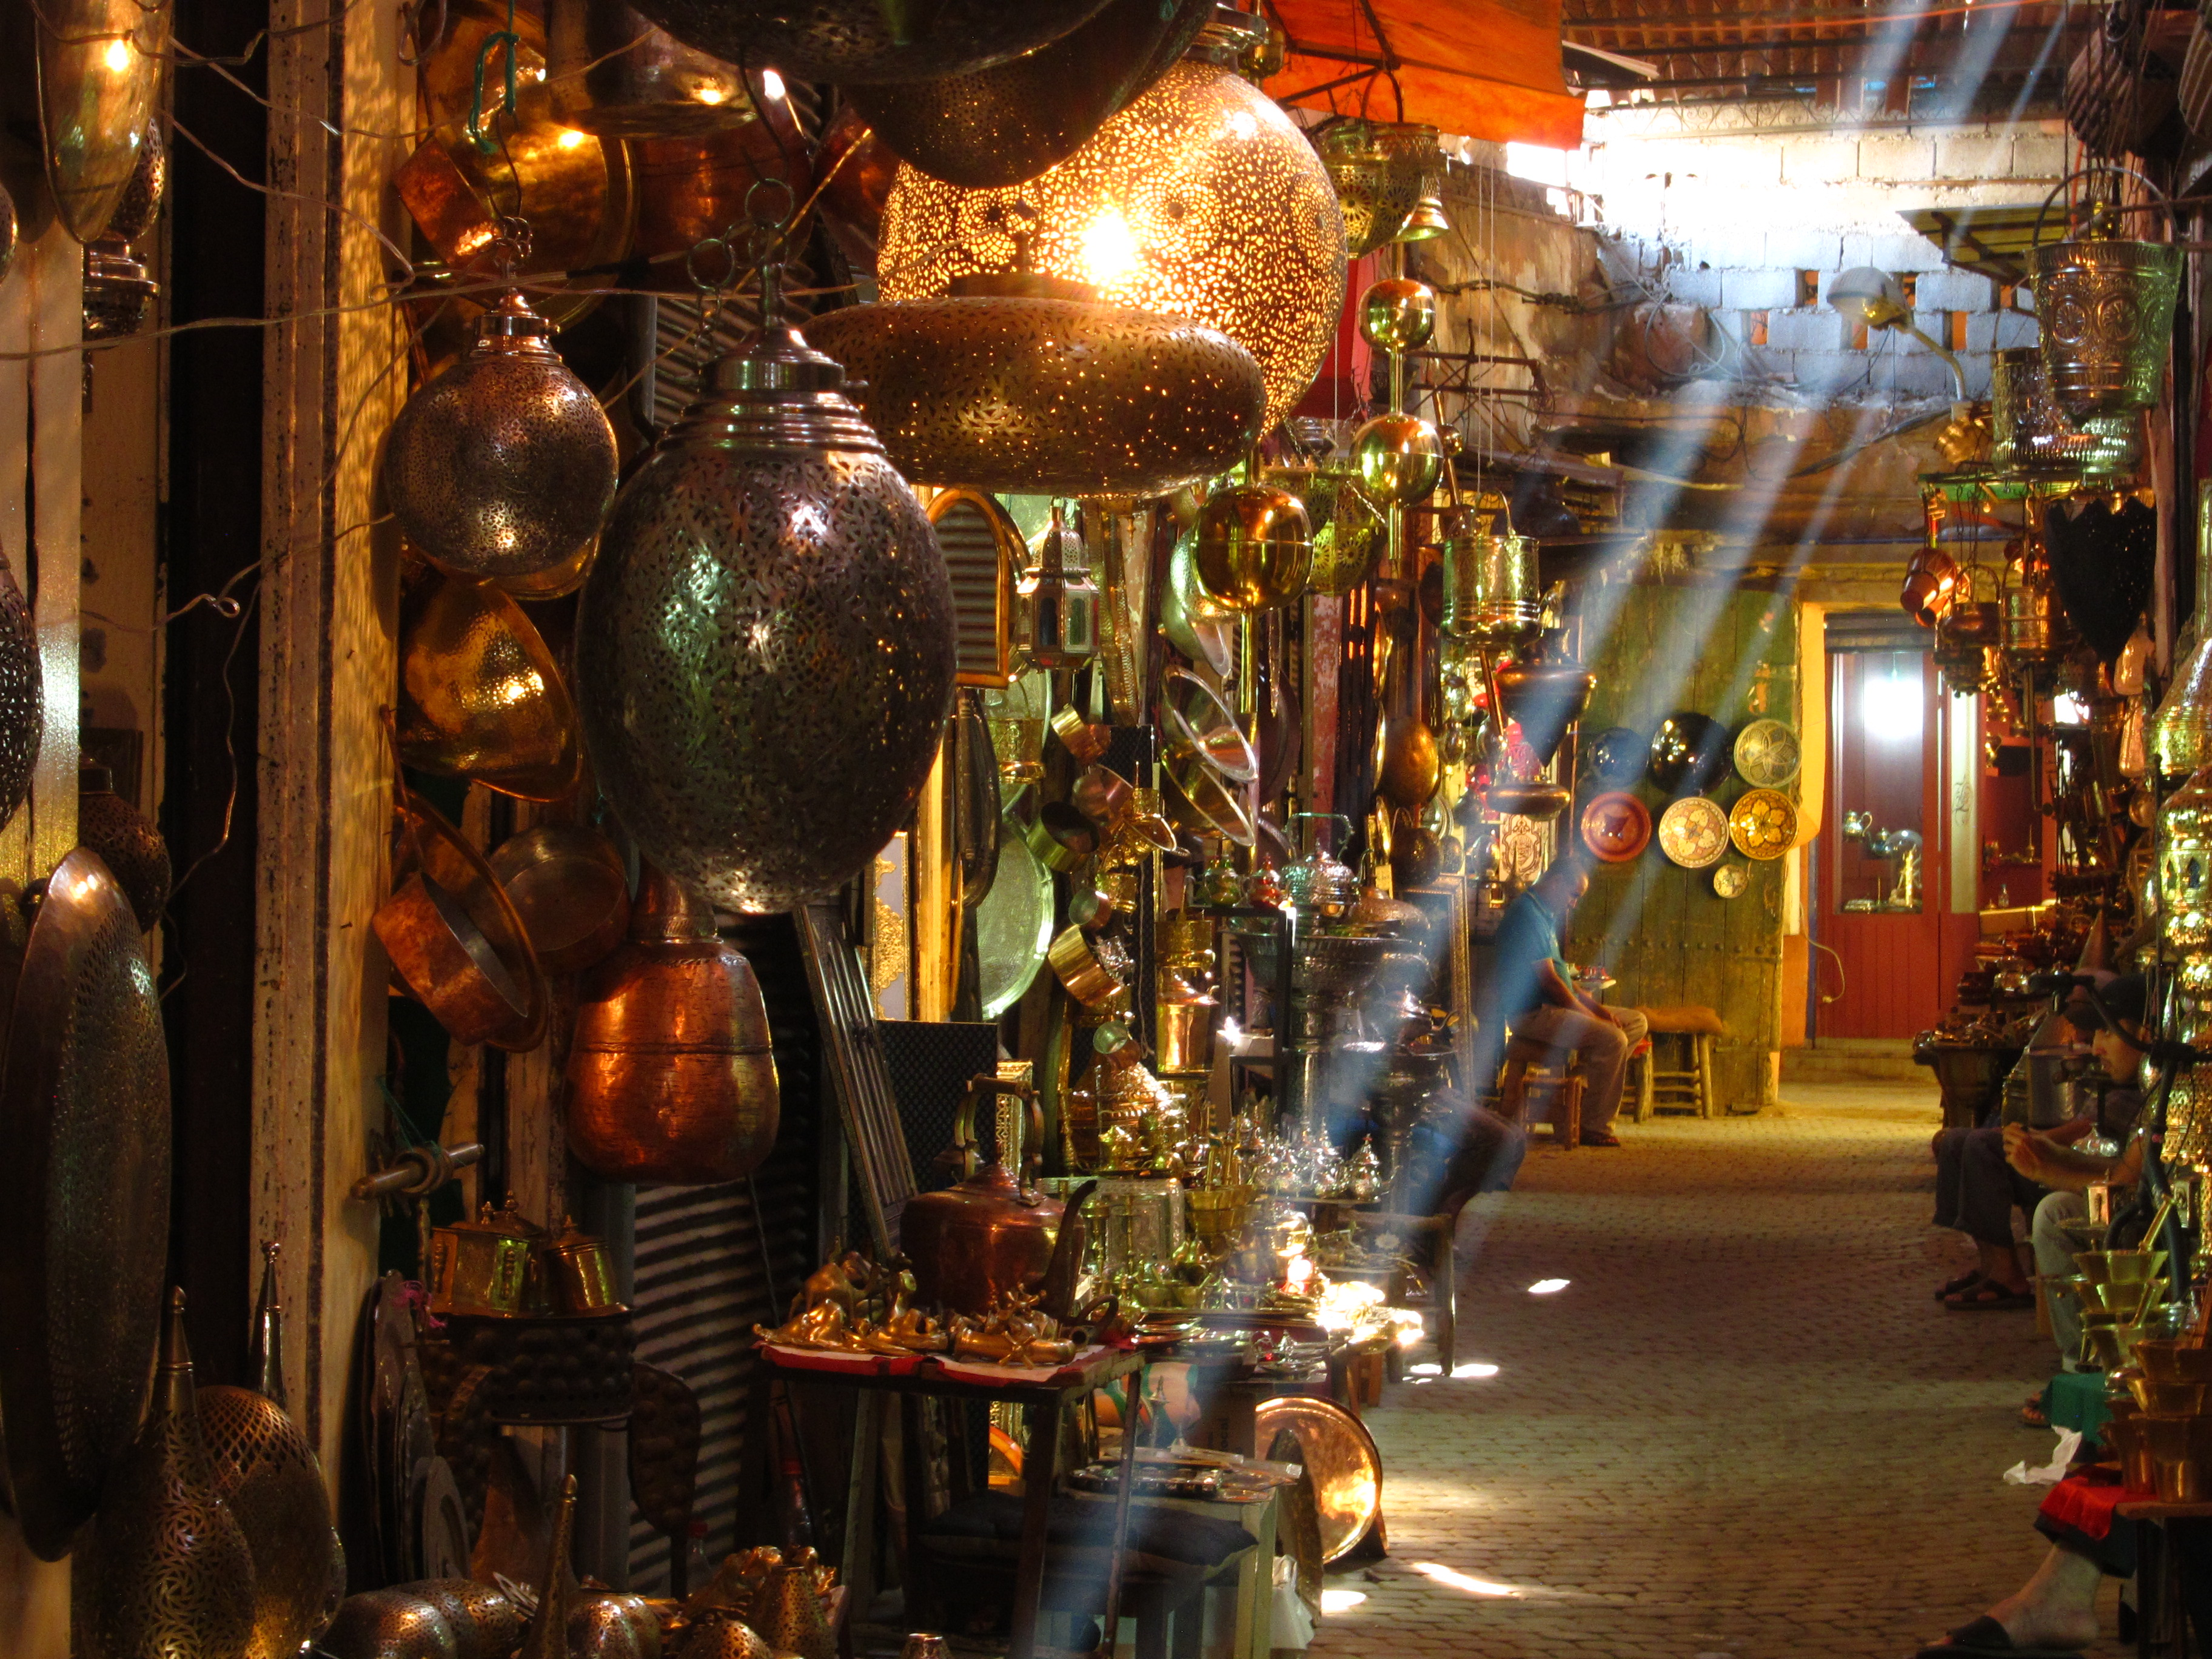 Marrakech's souks are a seemingly endless labyrinth of shops - but you are expected to haggle